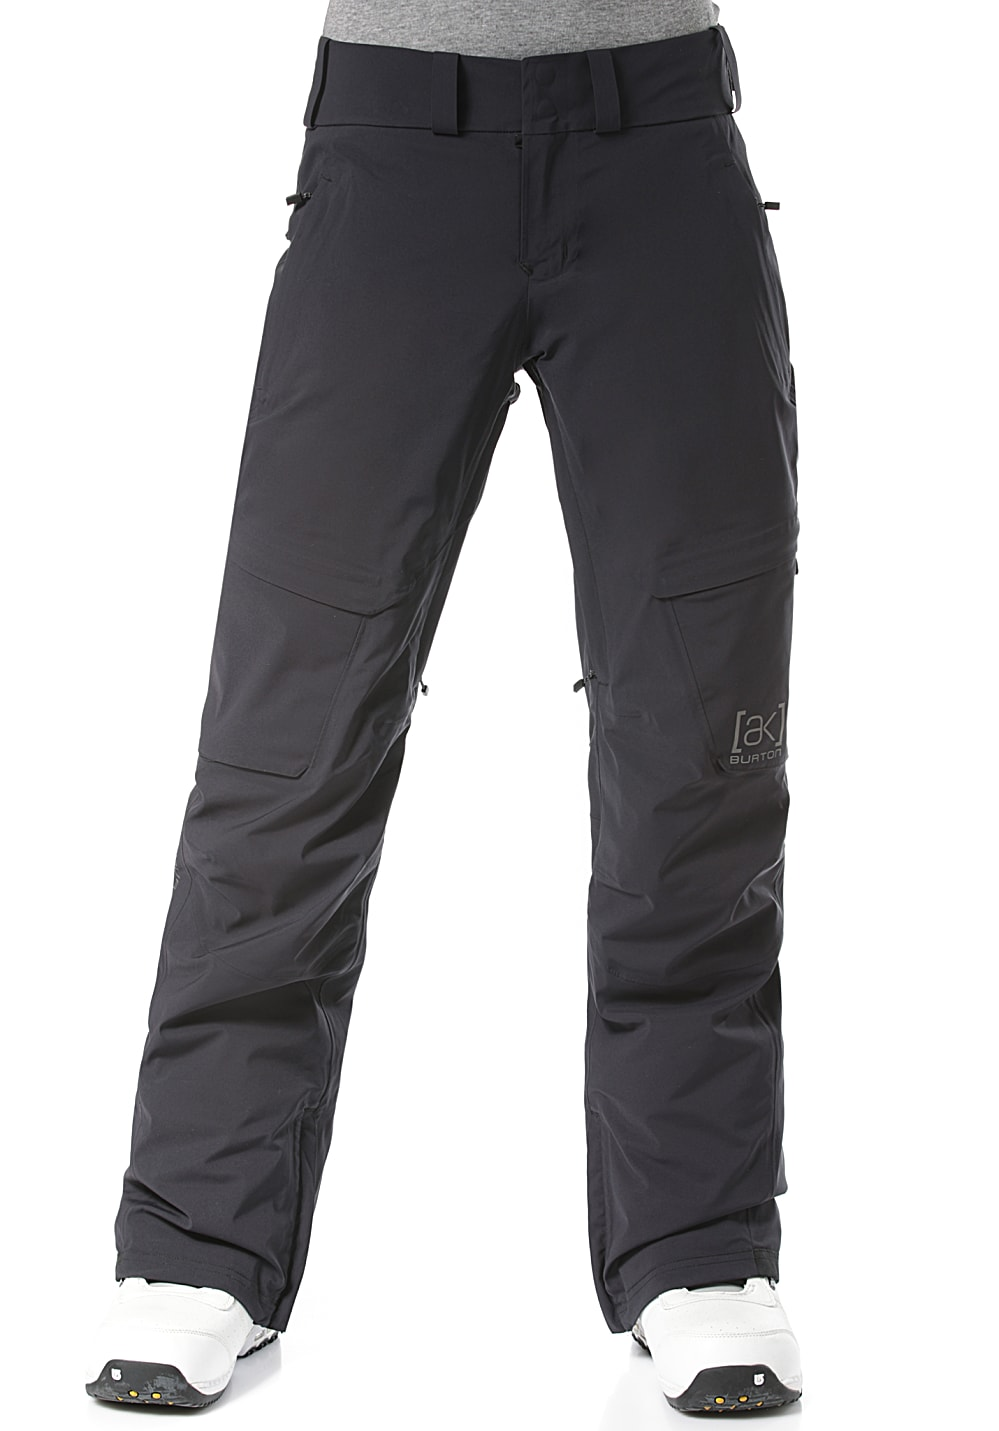 Hosen - Burton AK Gore Summit Insulated Snowboardhose für Damen Schwarz  - Onlineshop Planet Sports